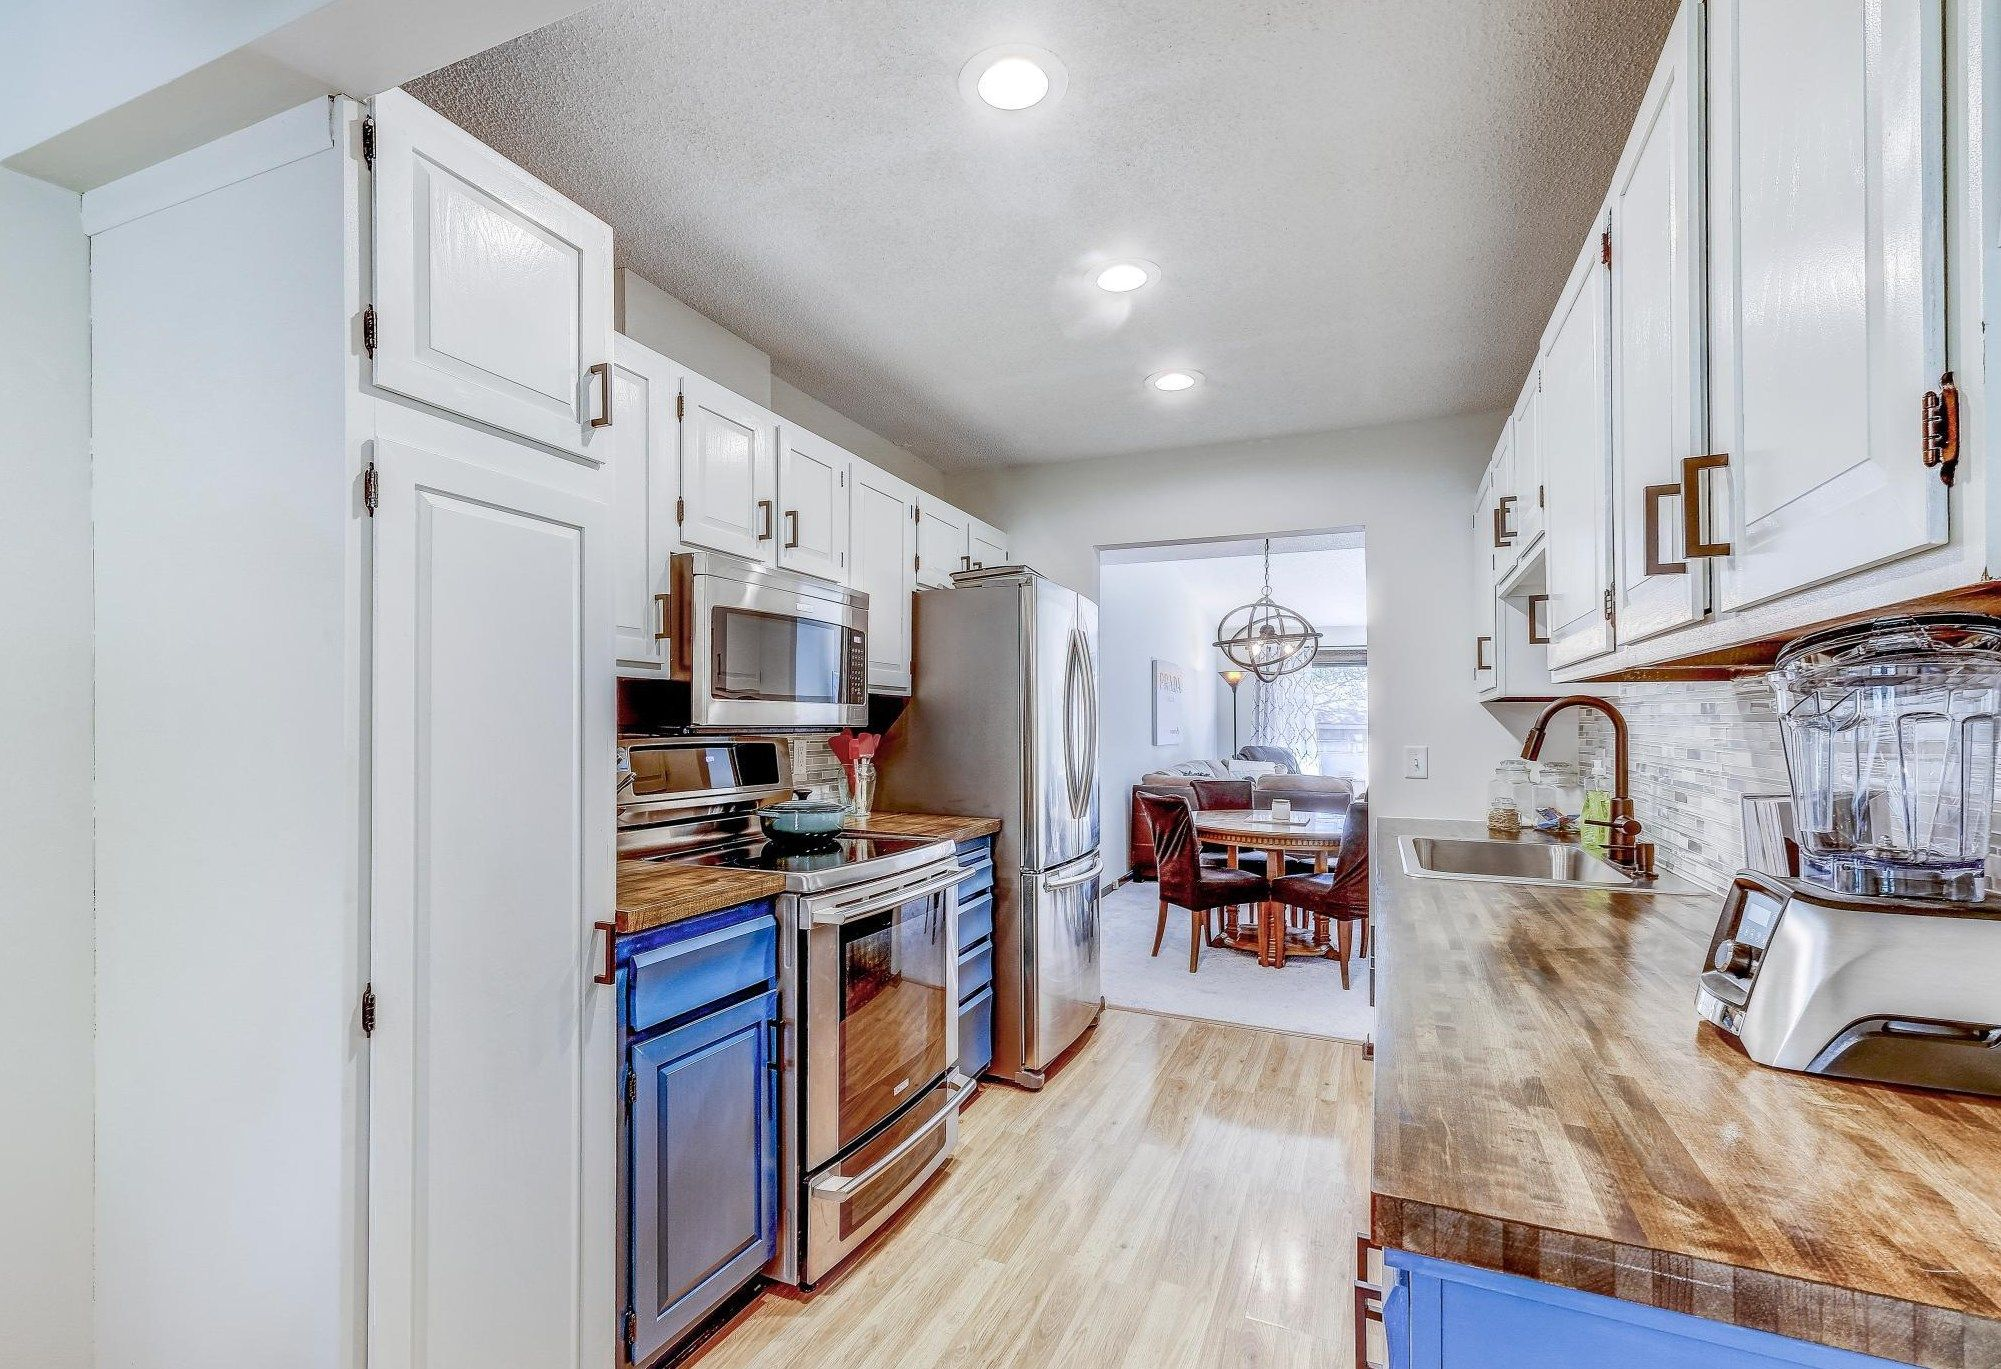 10271 Scarborough Rd Bloomington Mn 55437 Mls 5669471 Coldwell Banker Informal Dining Rooms Scarborough New Homes